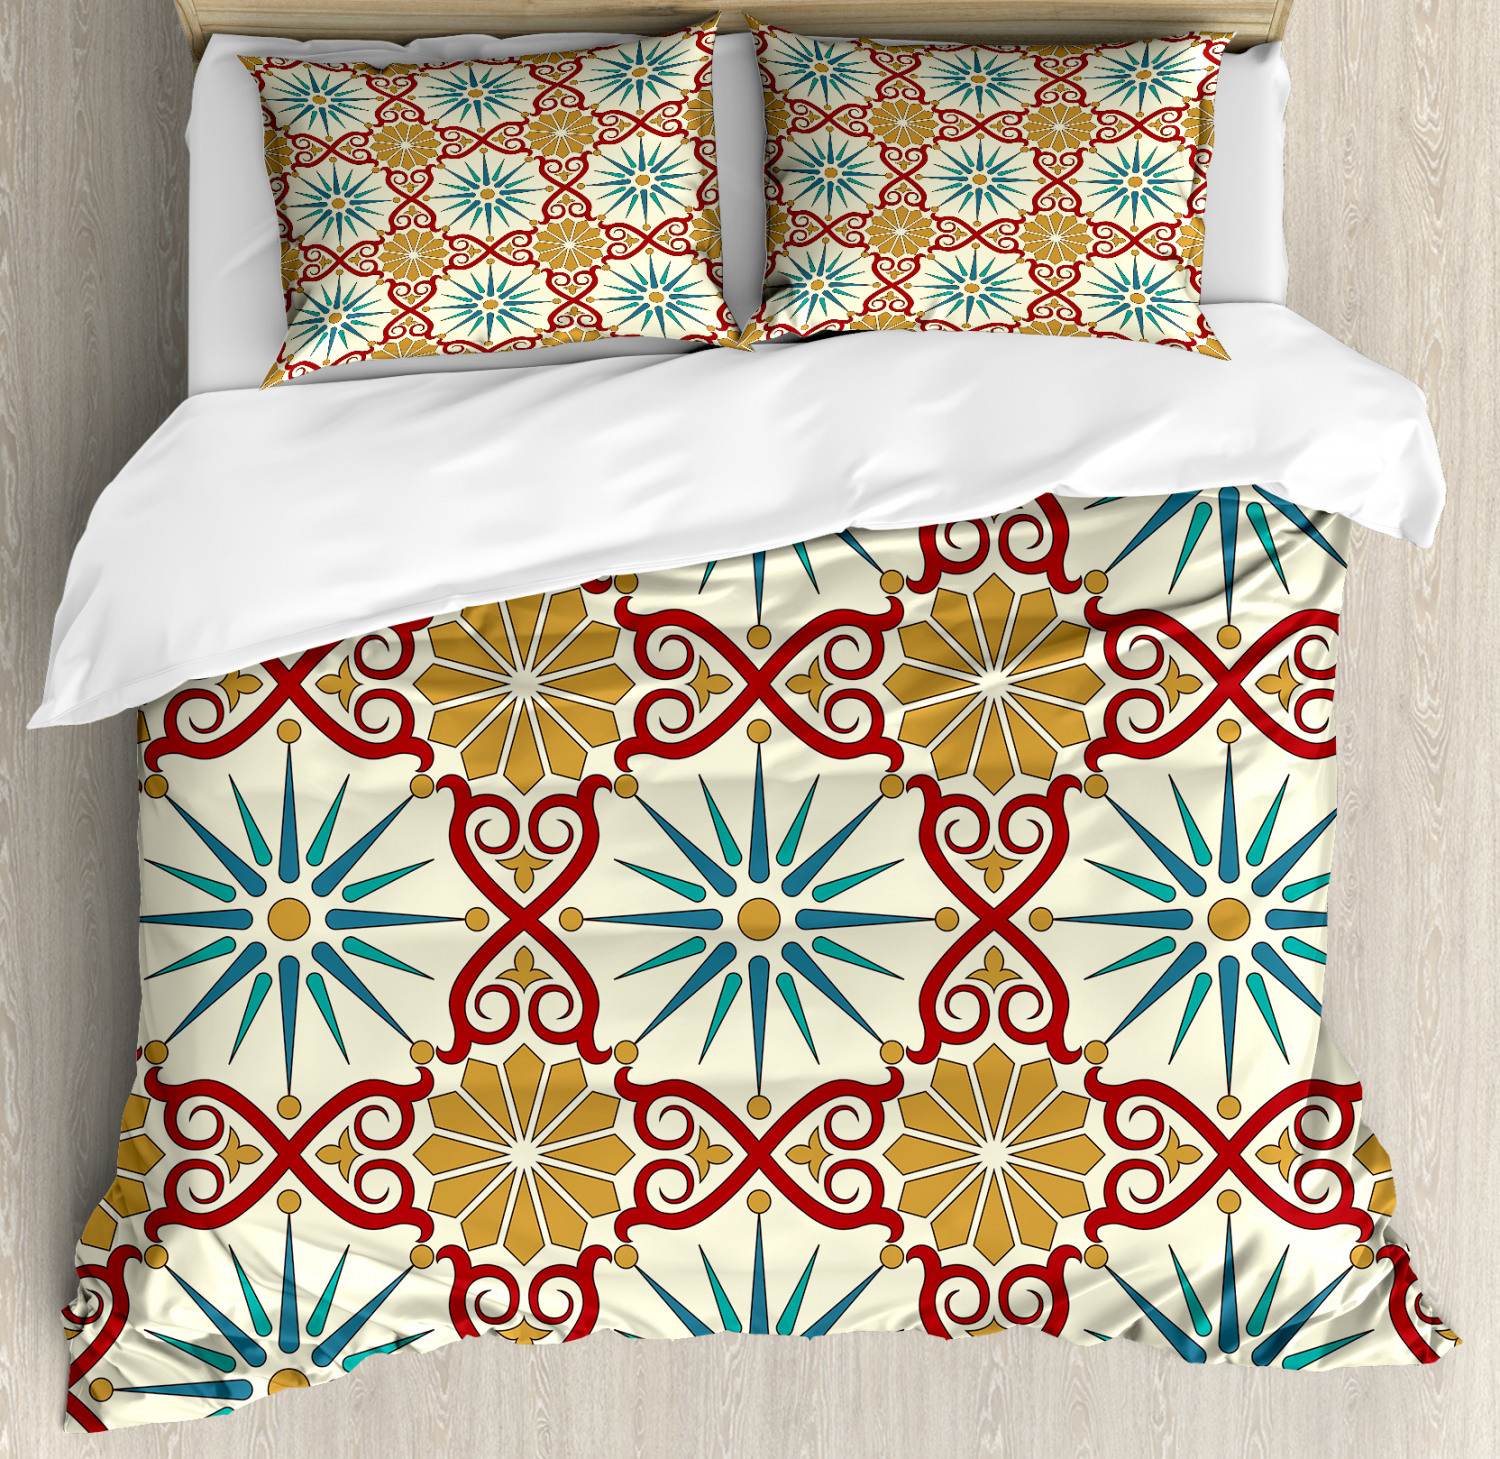 Classic Duvet Cover Set with Pillow Shams Sacred Geometric Forms Print